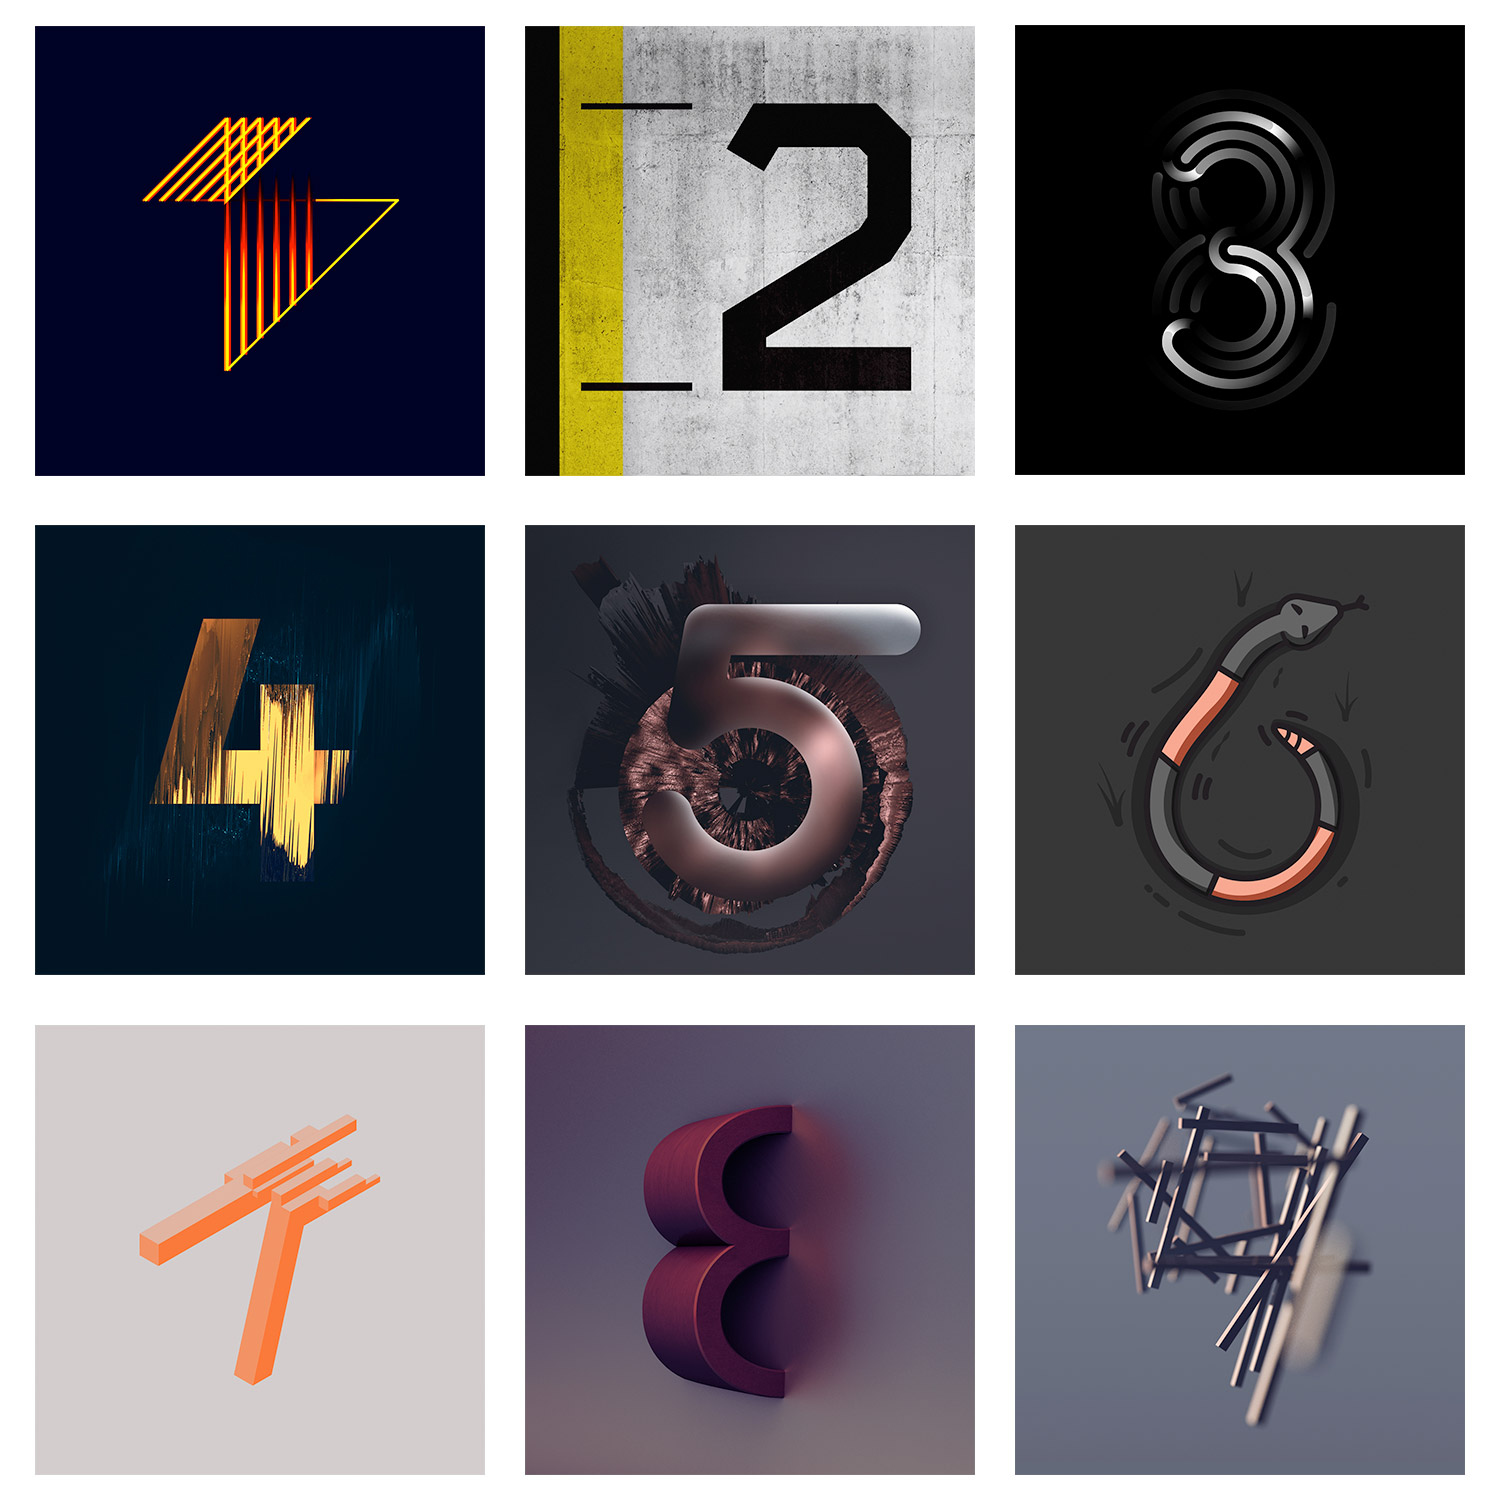 36daysoftype   Number A Day For 36 Days  U2013 Chris